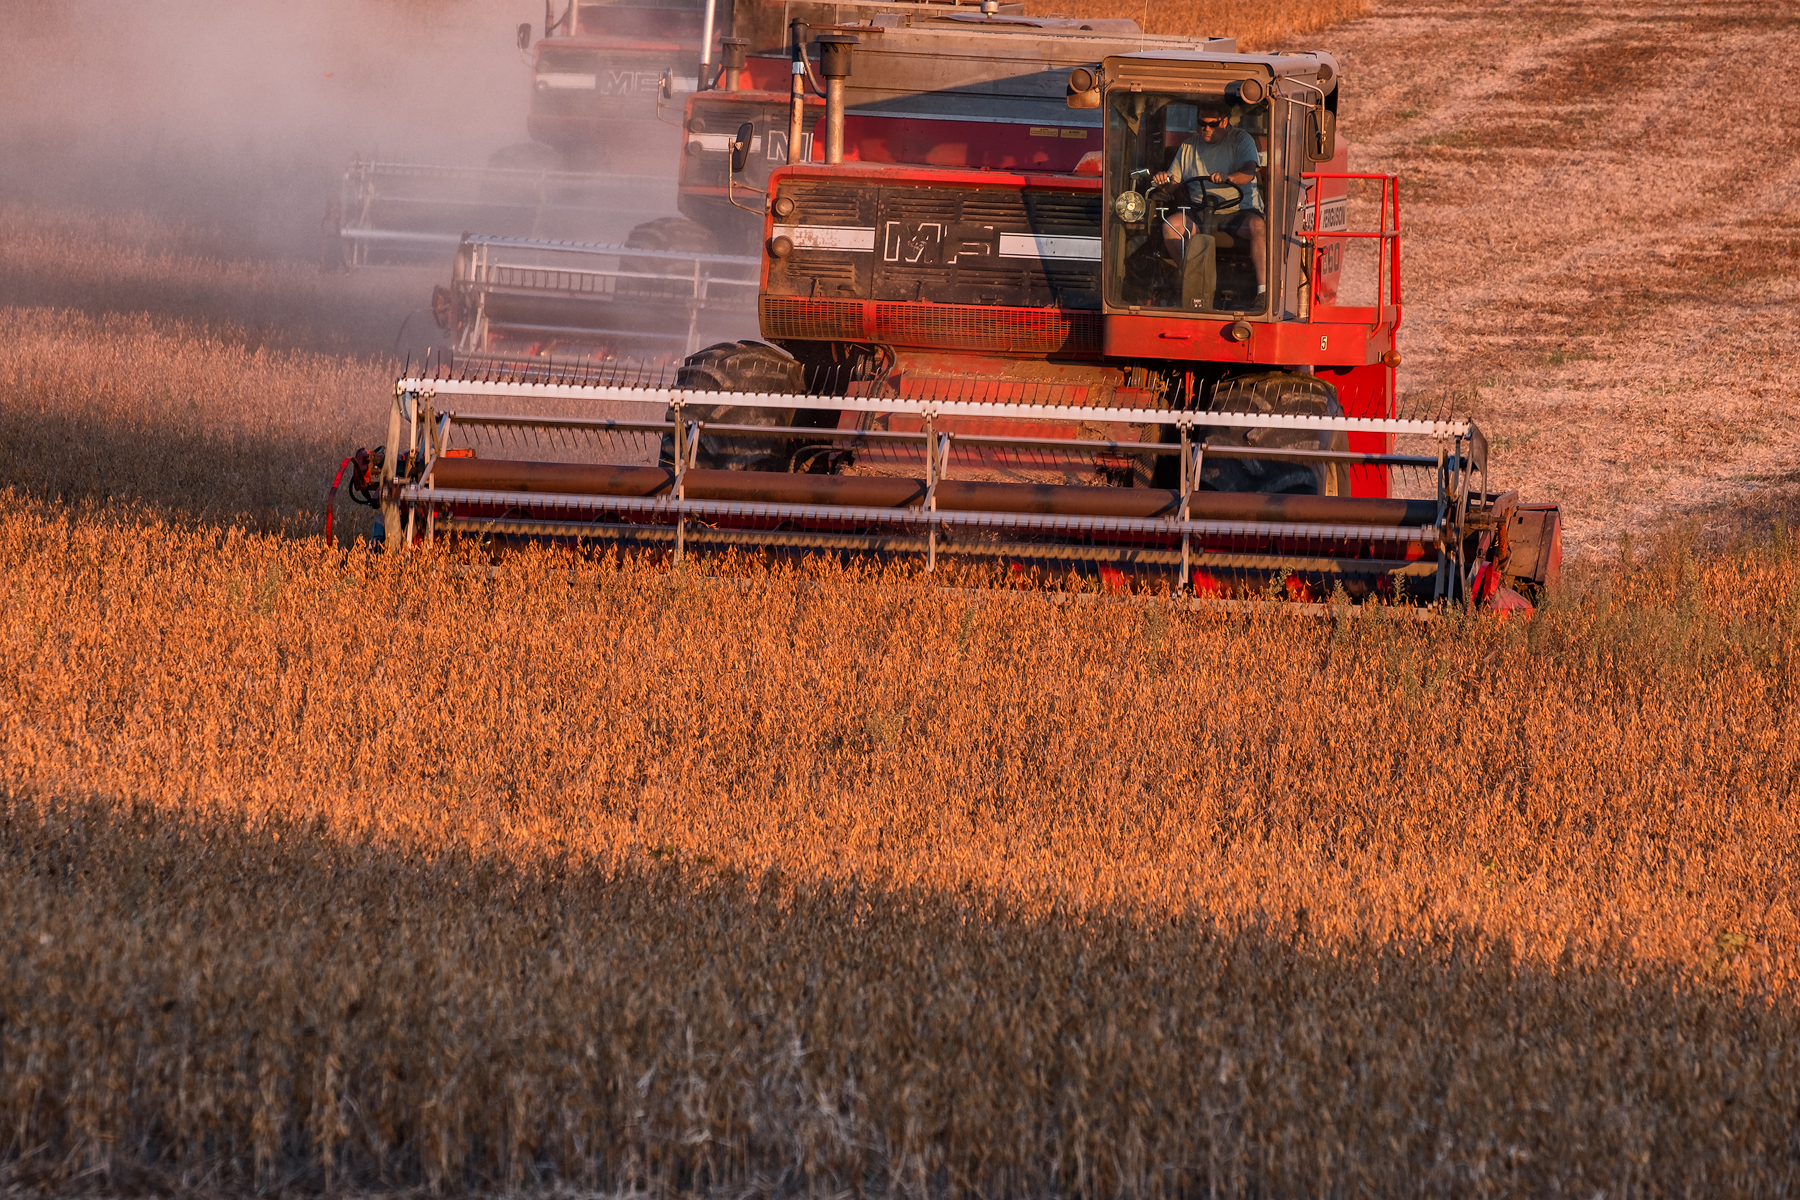 A phalanx of combines working the soybean harvest. Fuji X-T2 and a Fujinon XF55-200mm at 200mm. Image exposed at ISO 200 at f5.6 for 1/60 of a second.